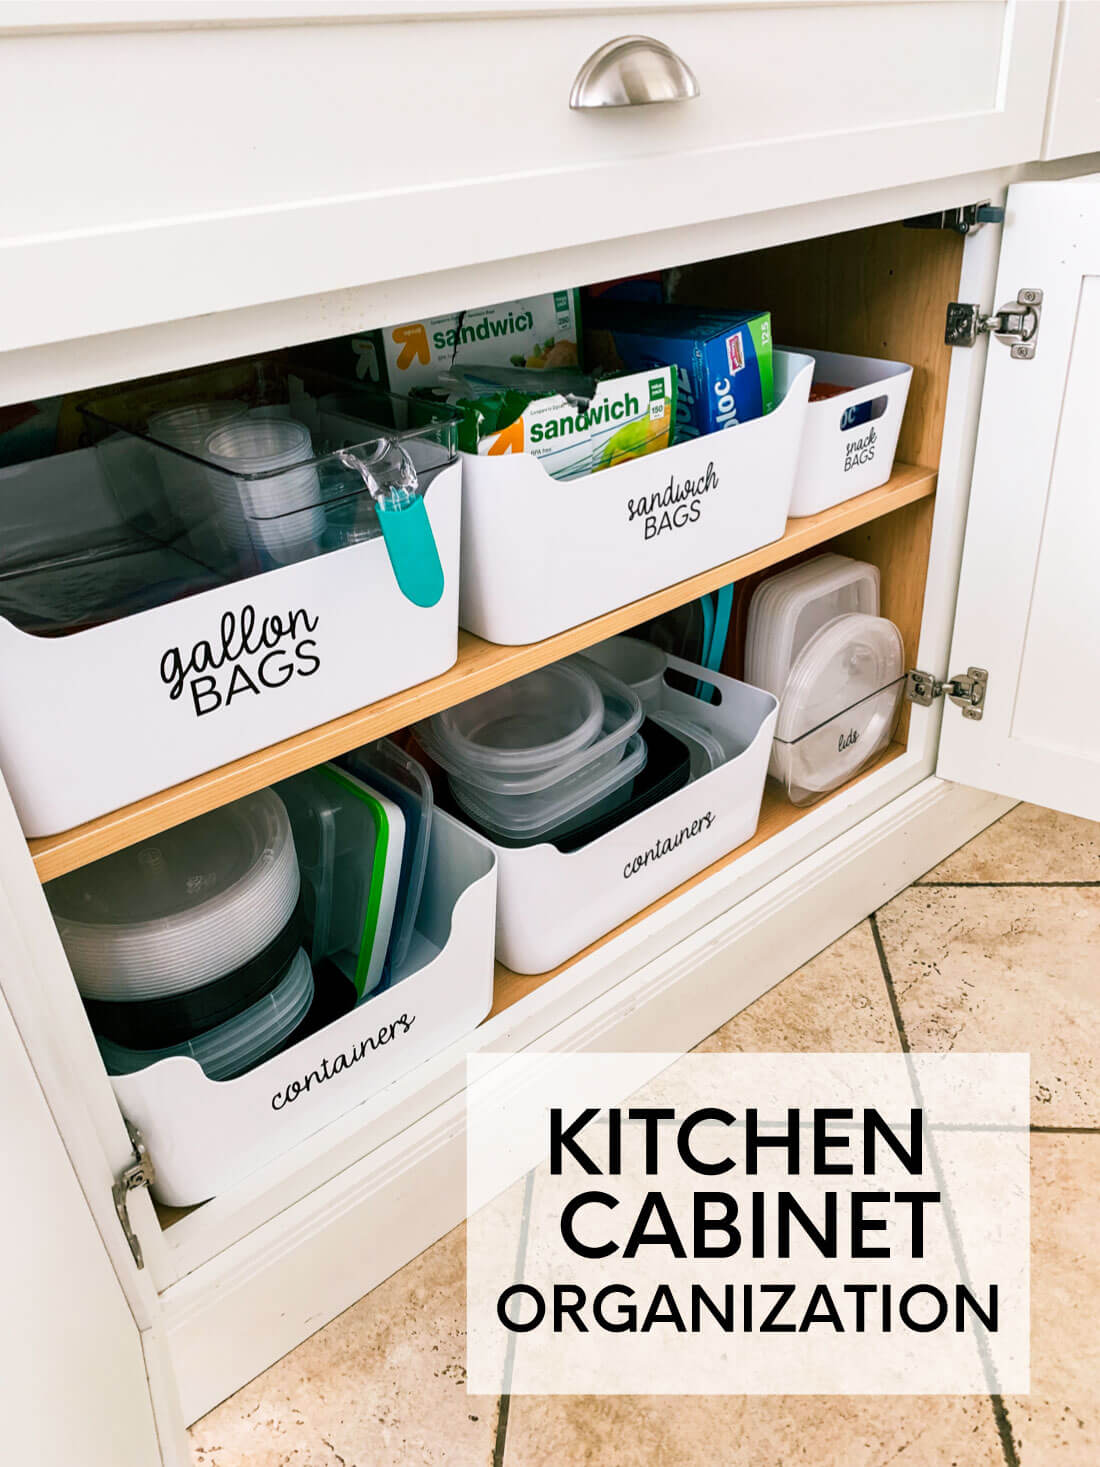 How to organize kitchen cabinets - the basics.